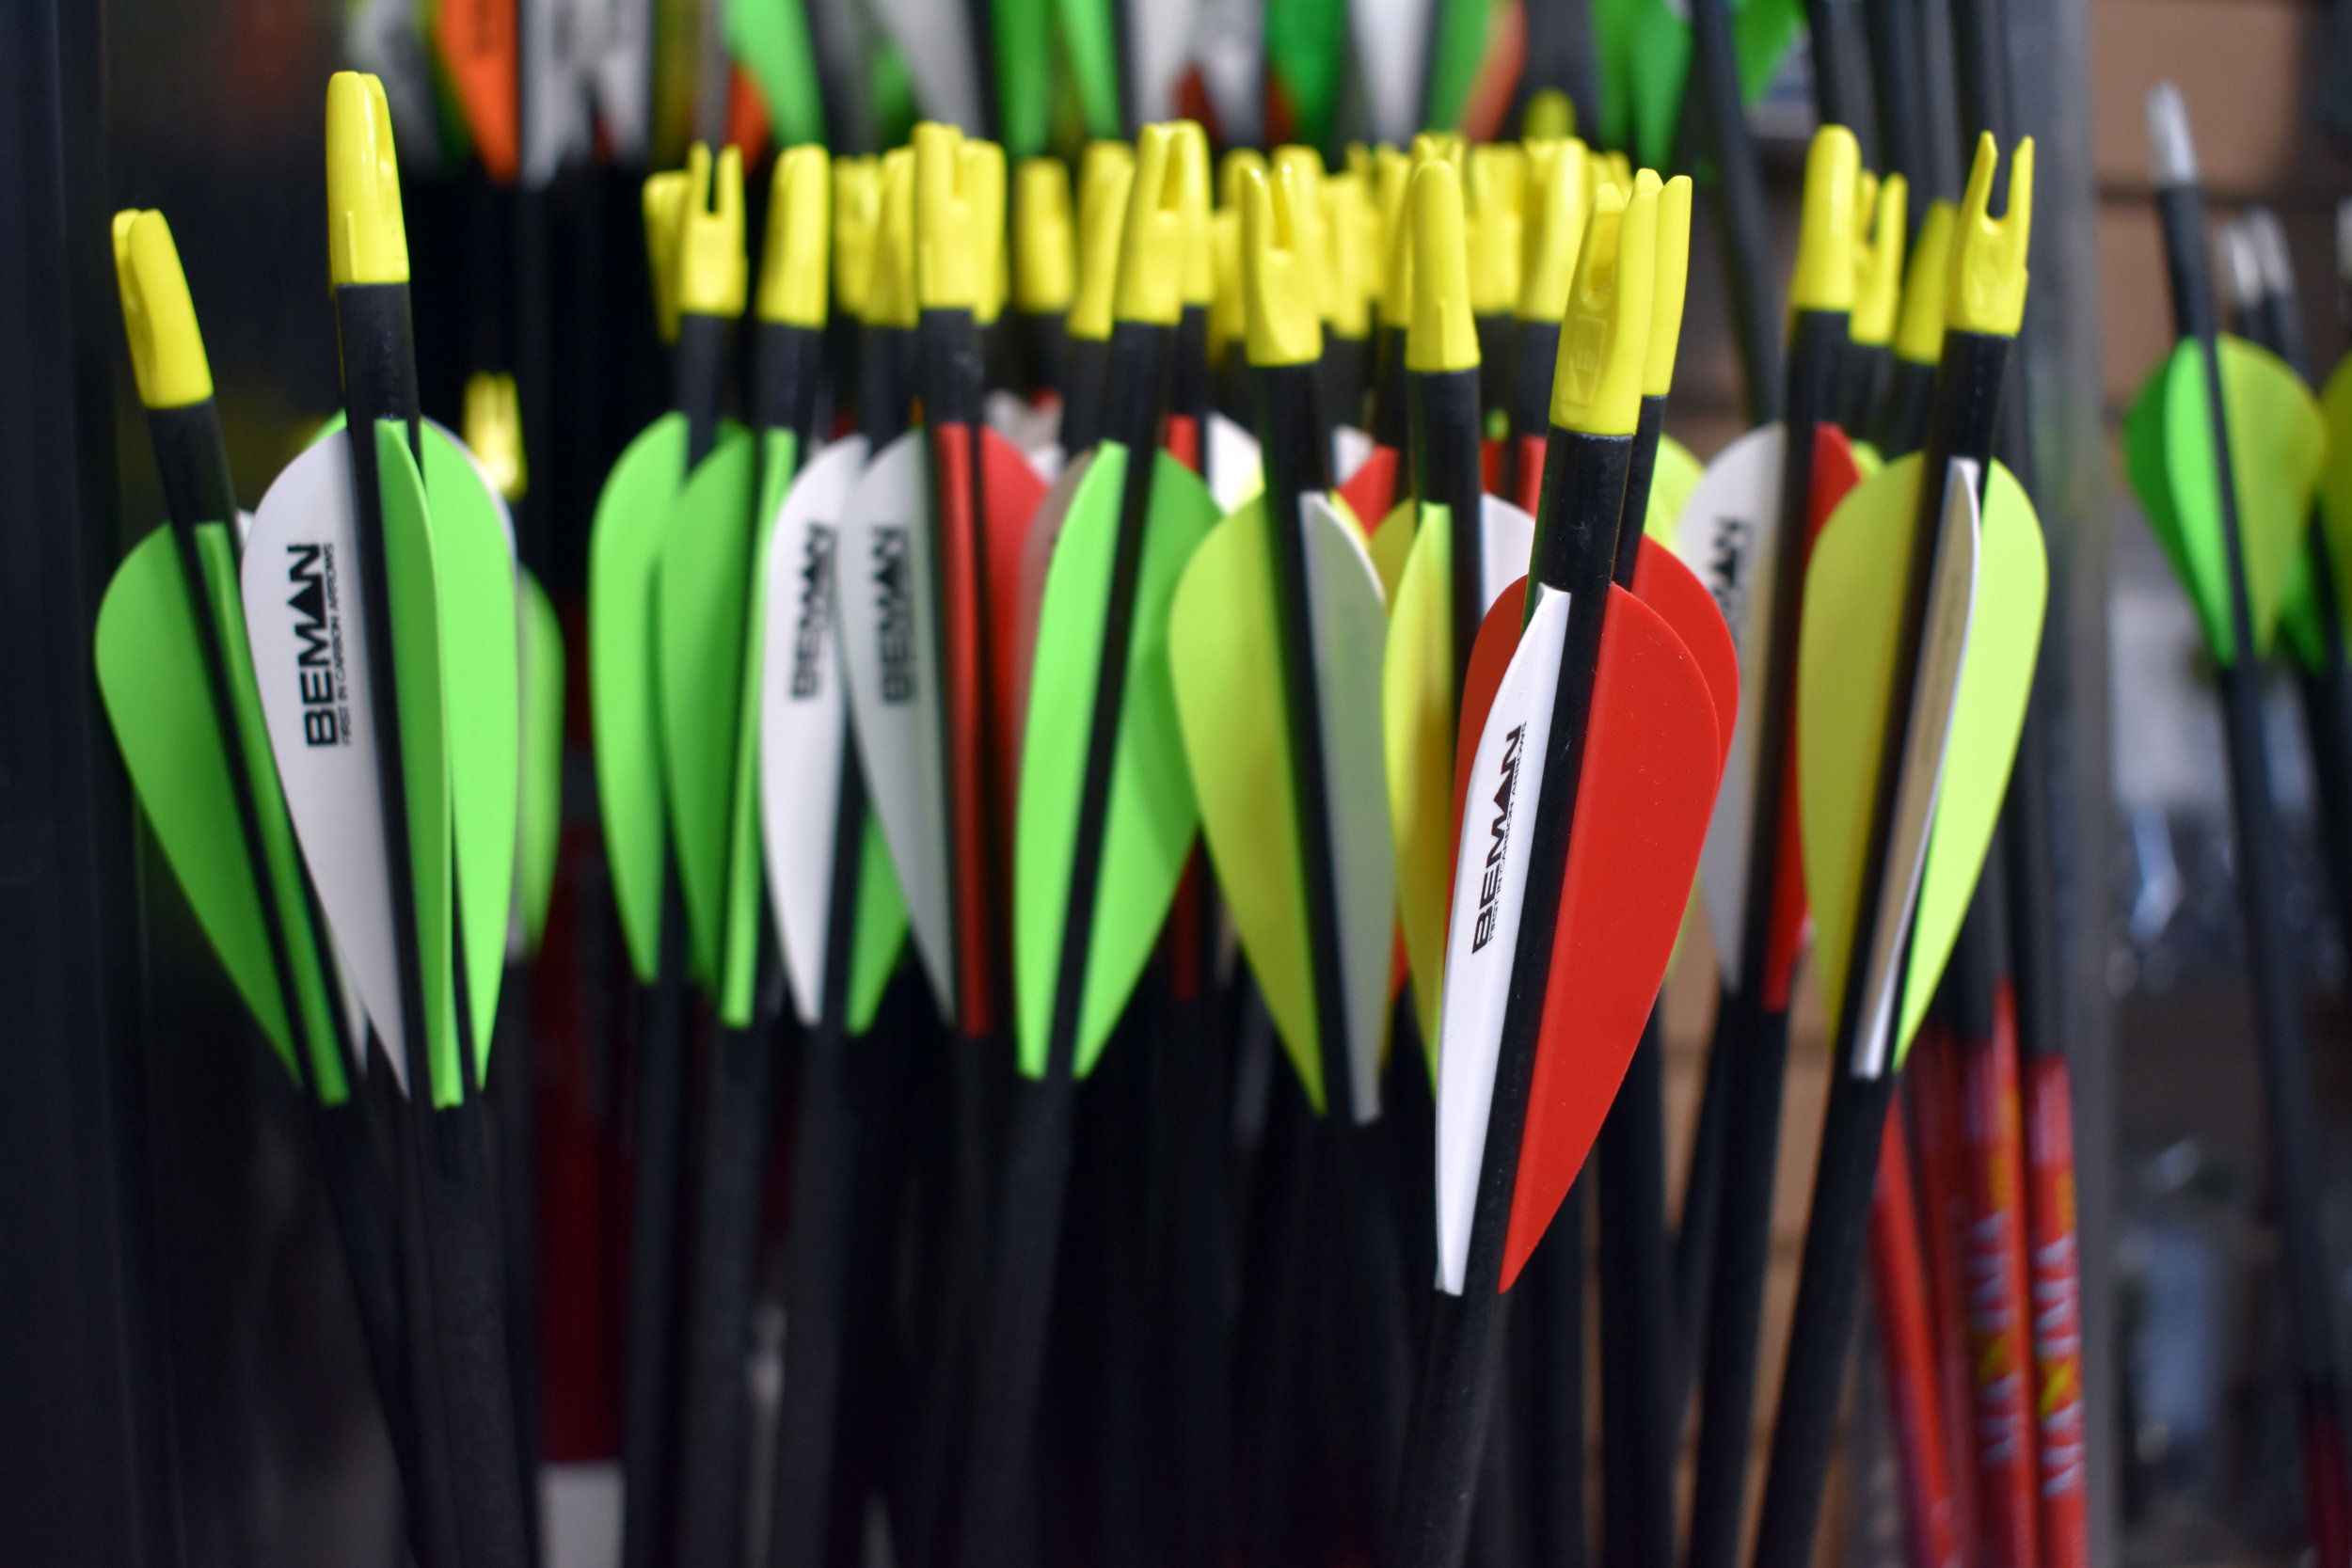 Arrows - We are an authorized dealer for Victory arrows. We also stock a selection of arrows by Easton, Beman, Gold Tip and Carbon Express. Our arrow selection caters to both the hunter and target archer.